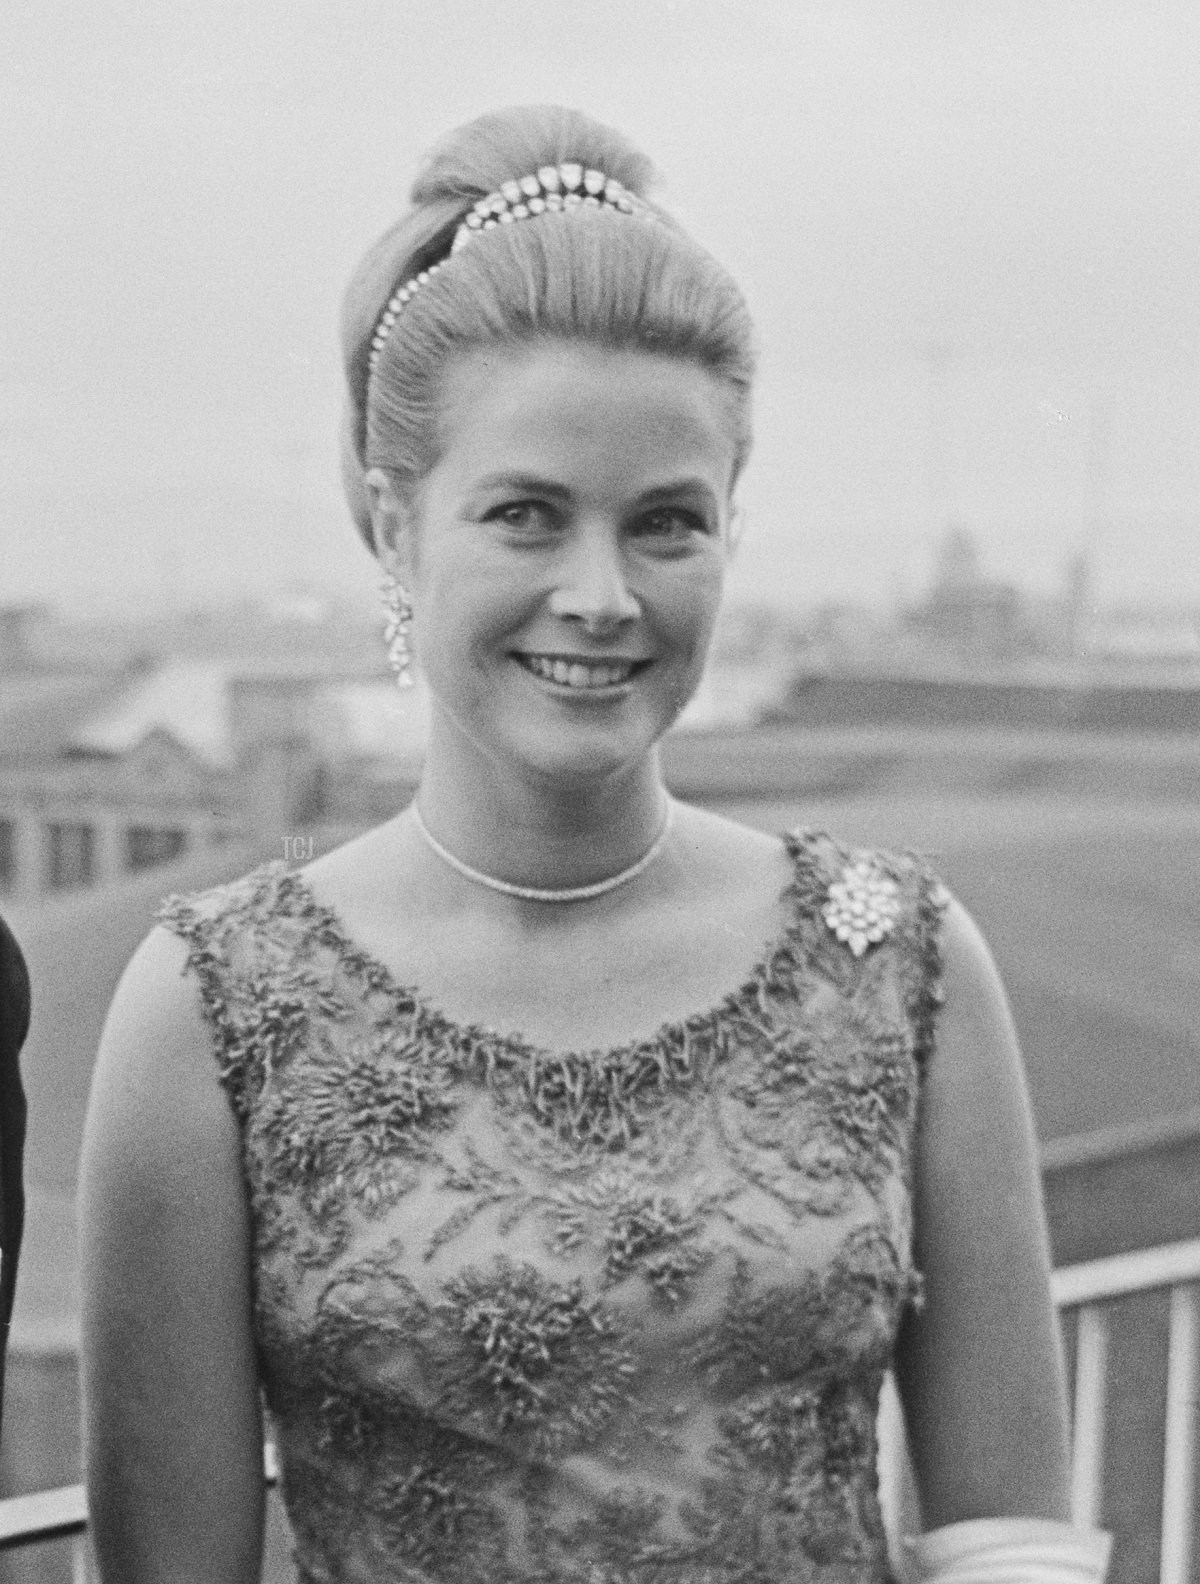 Rainier III, Prince of Monaco (1923-2005) and Princess Grace of Monaco, wearing a dress by Givenchy, attend the Bal Petits Lits Blancs at Powerscourt in Enniskerry, County Wicklow, Ireland, 6th July 1965